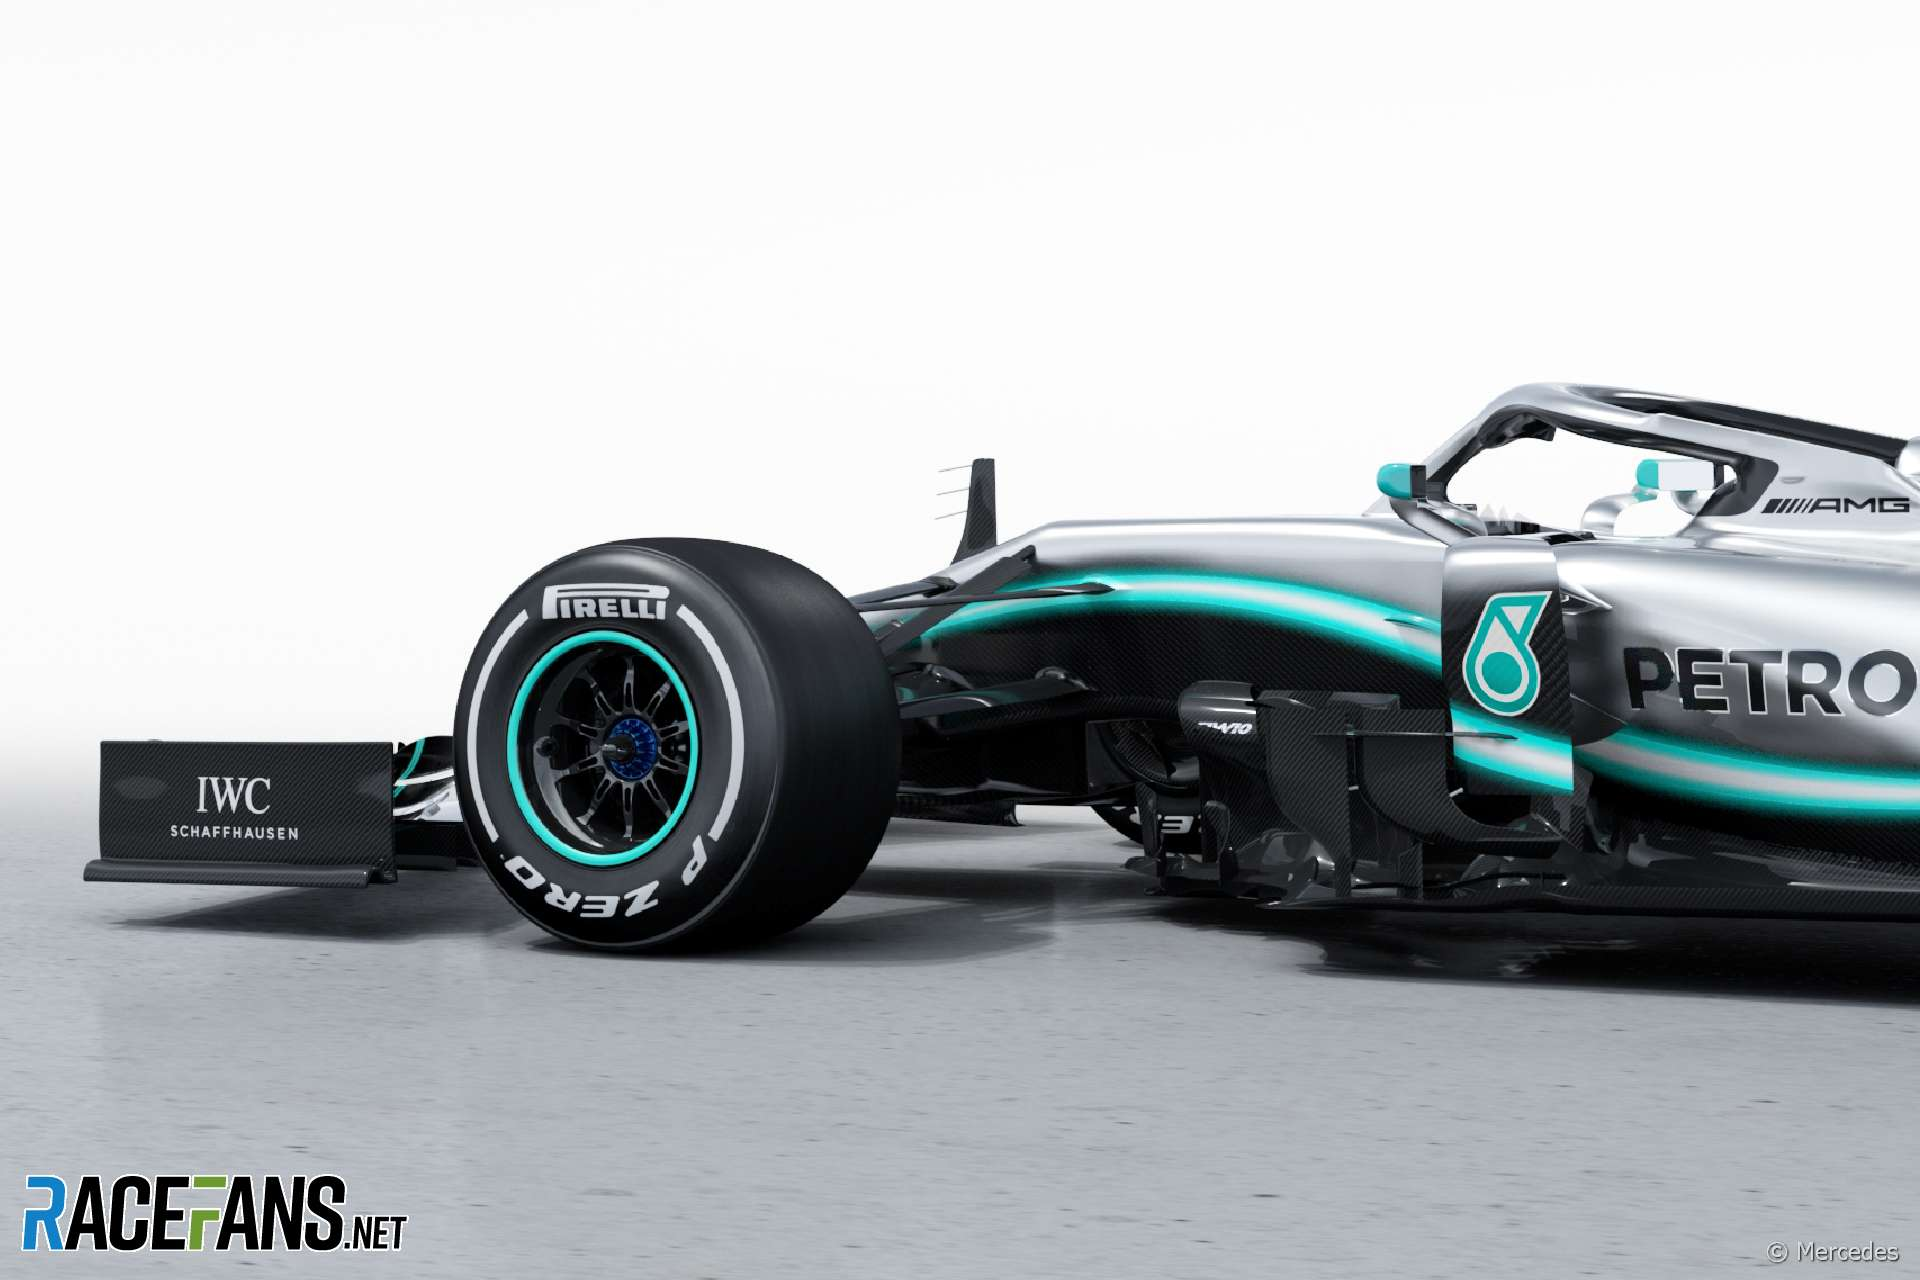 Compare Mercedes' new W10 and last year's vehicle